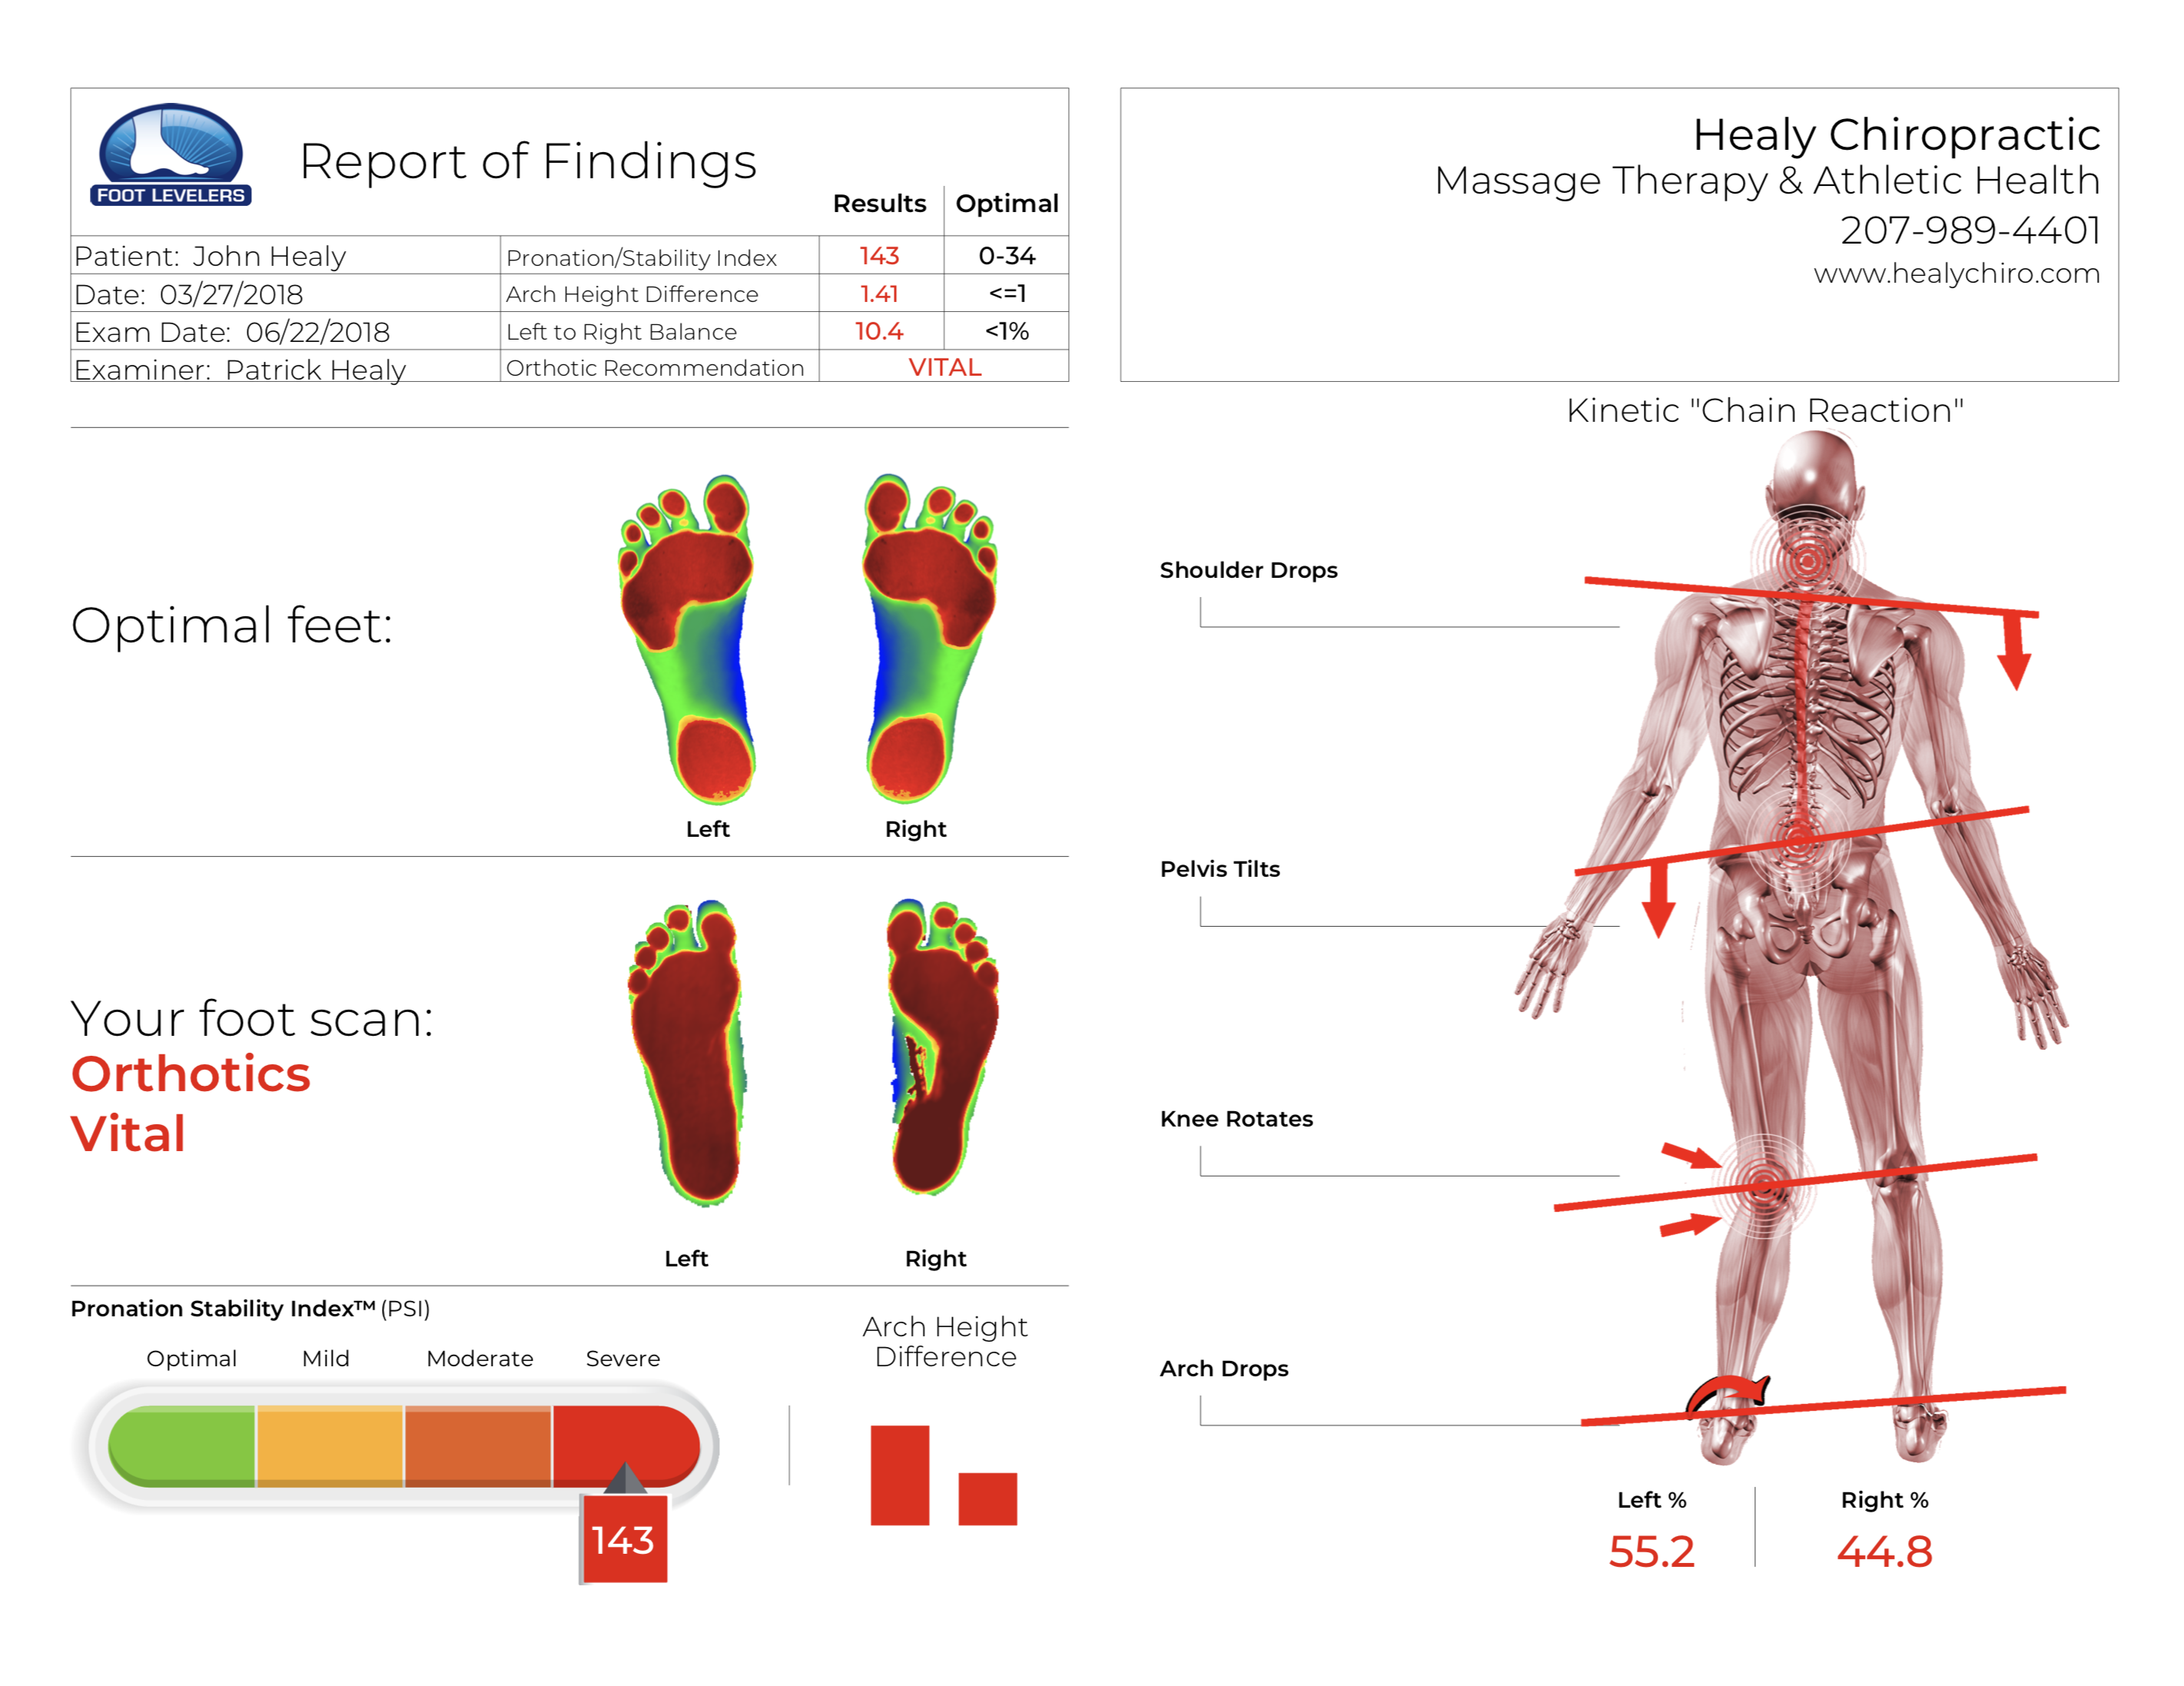 Uneven foot scan flat feet